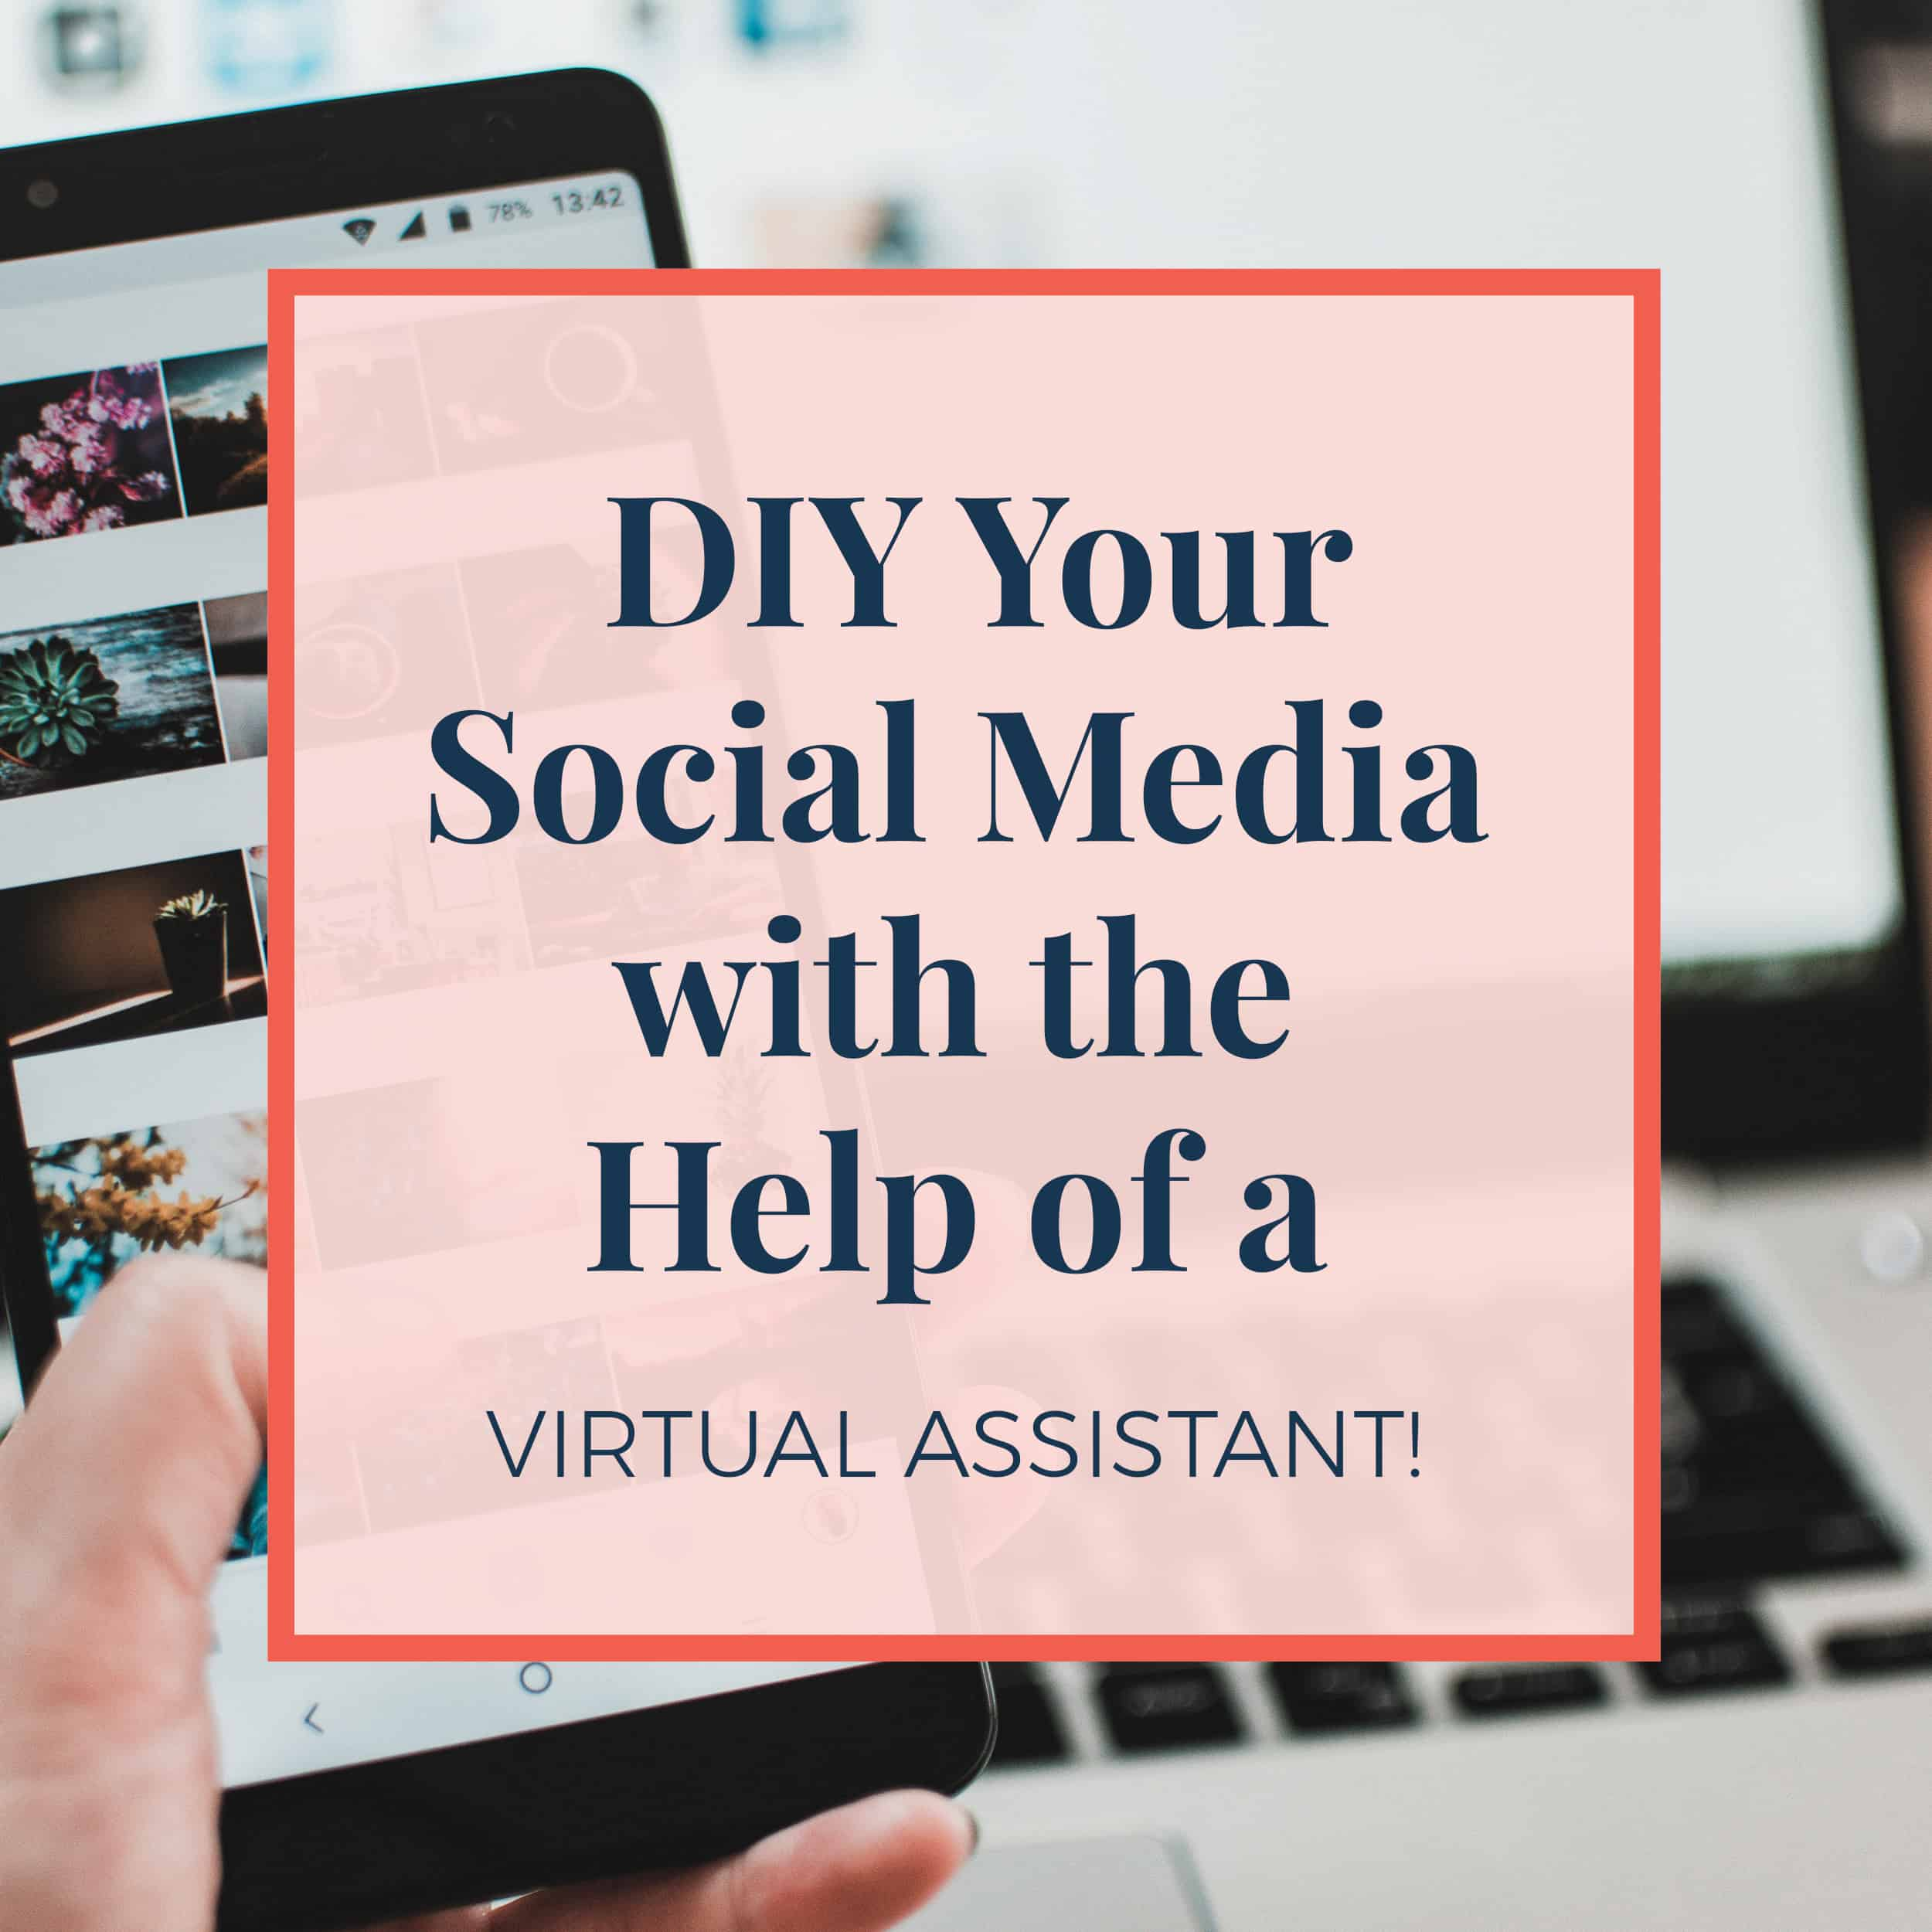 Jennie-Lyon-DIY-your-social-media-with-the-help-of-a-virtual-assistant